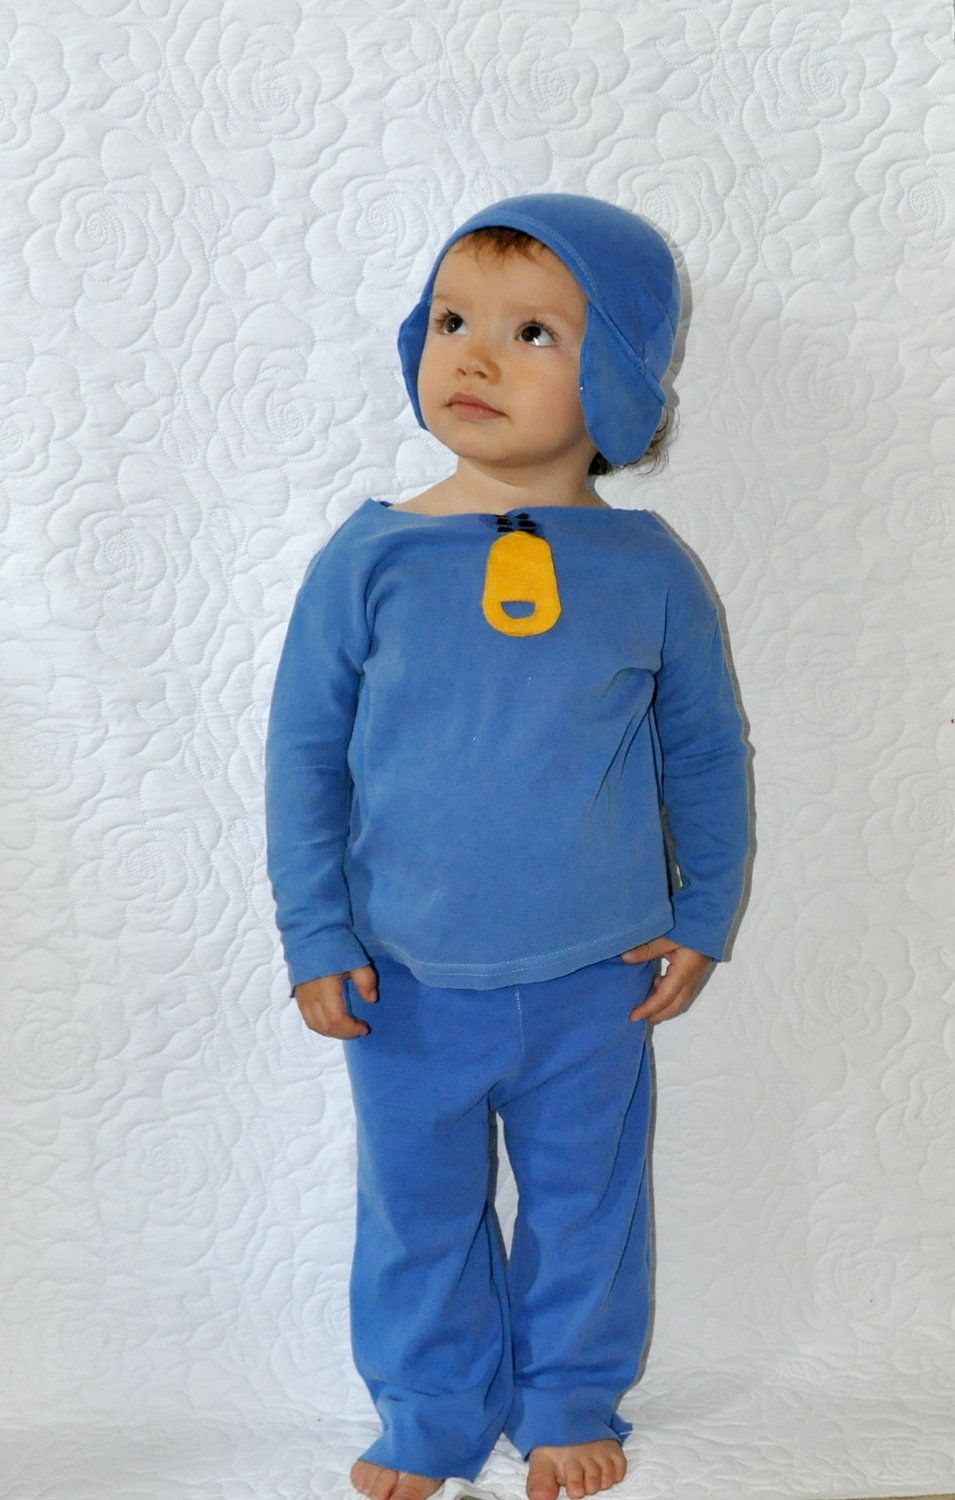 Pocoyo inspired costume boys babies kid toddlers infants childs ...